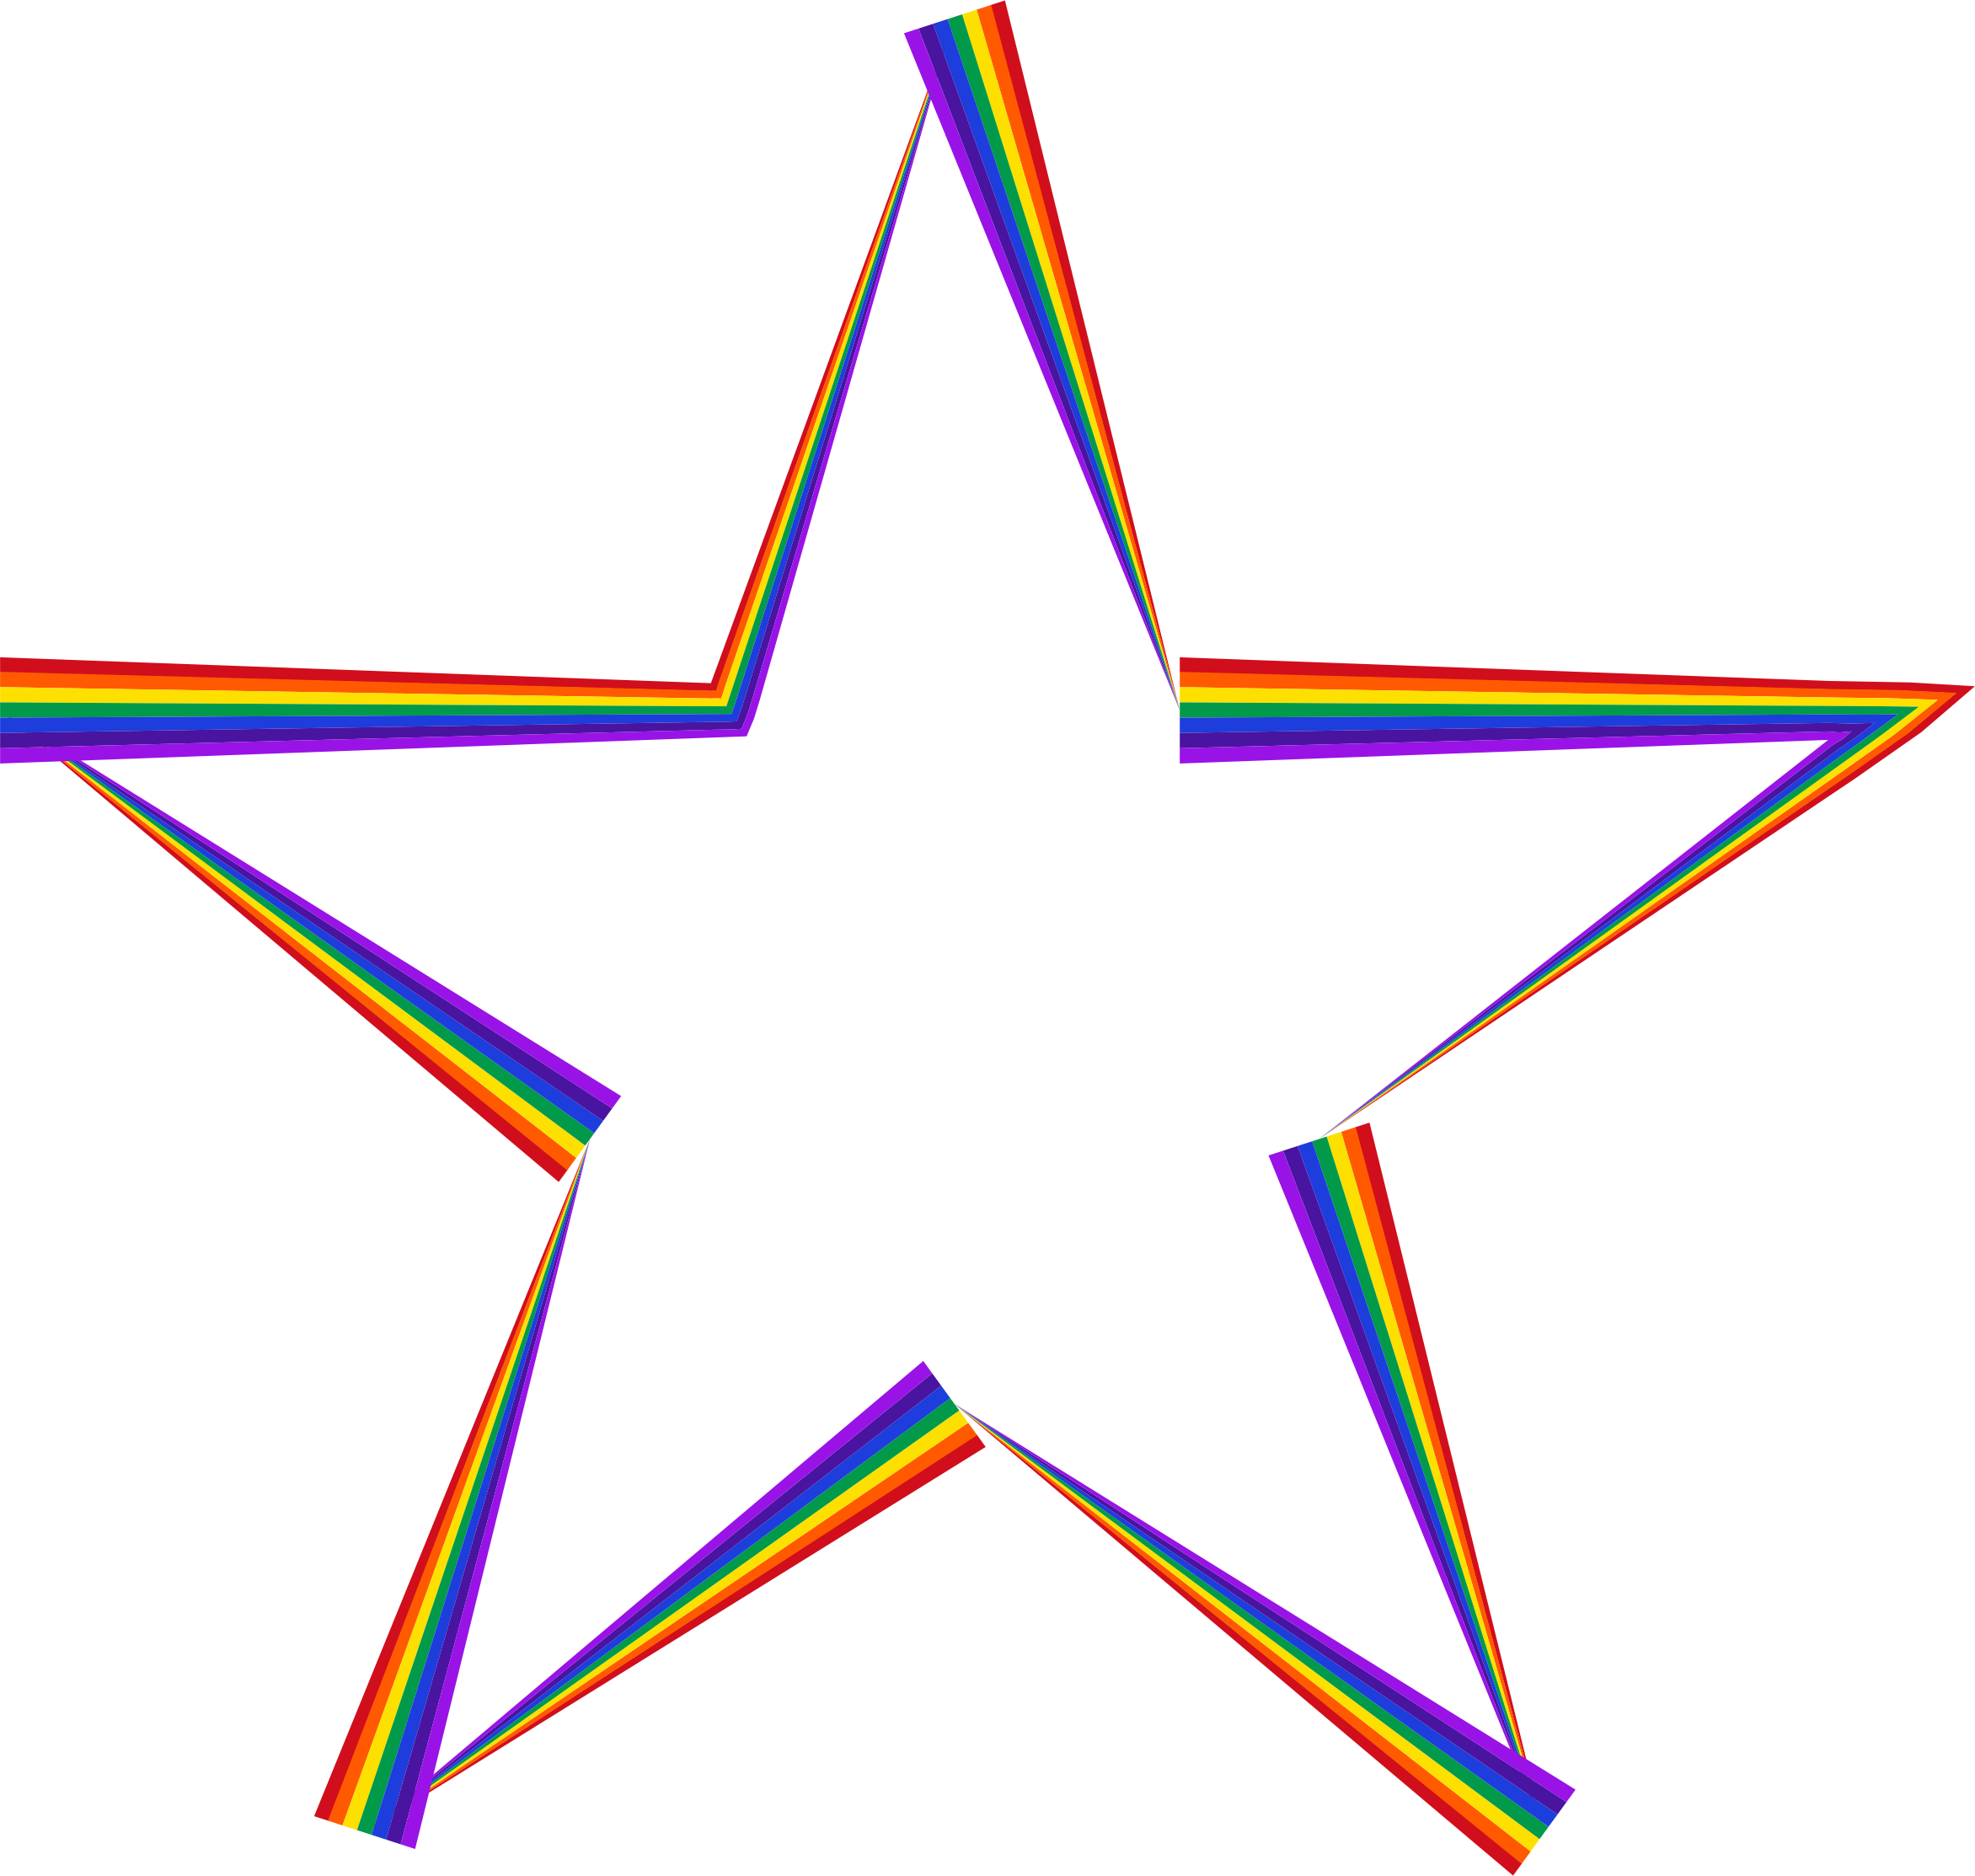 Star rainbow clipart graphic royalty free Clipart - Rainbow Star graphic royalty free